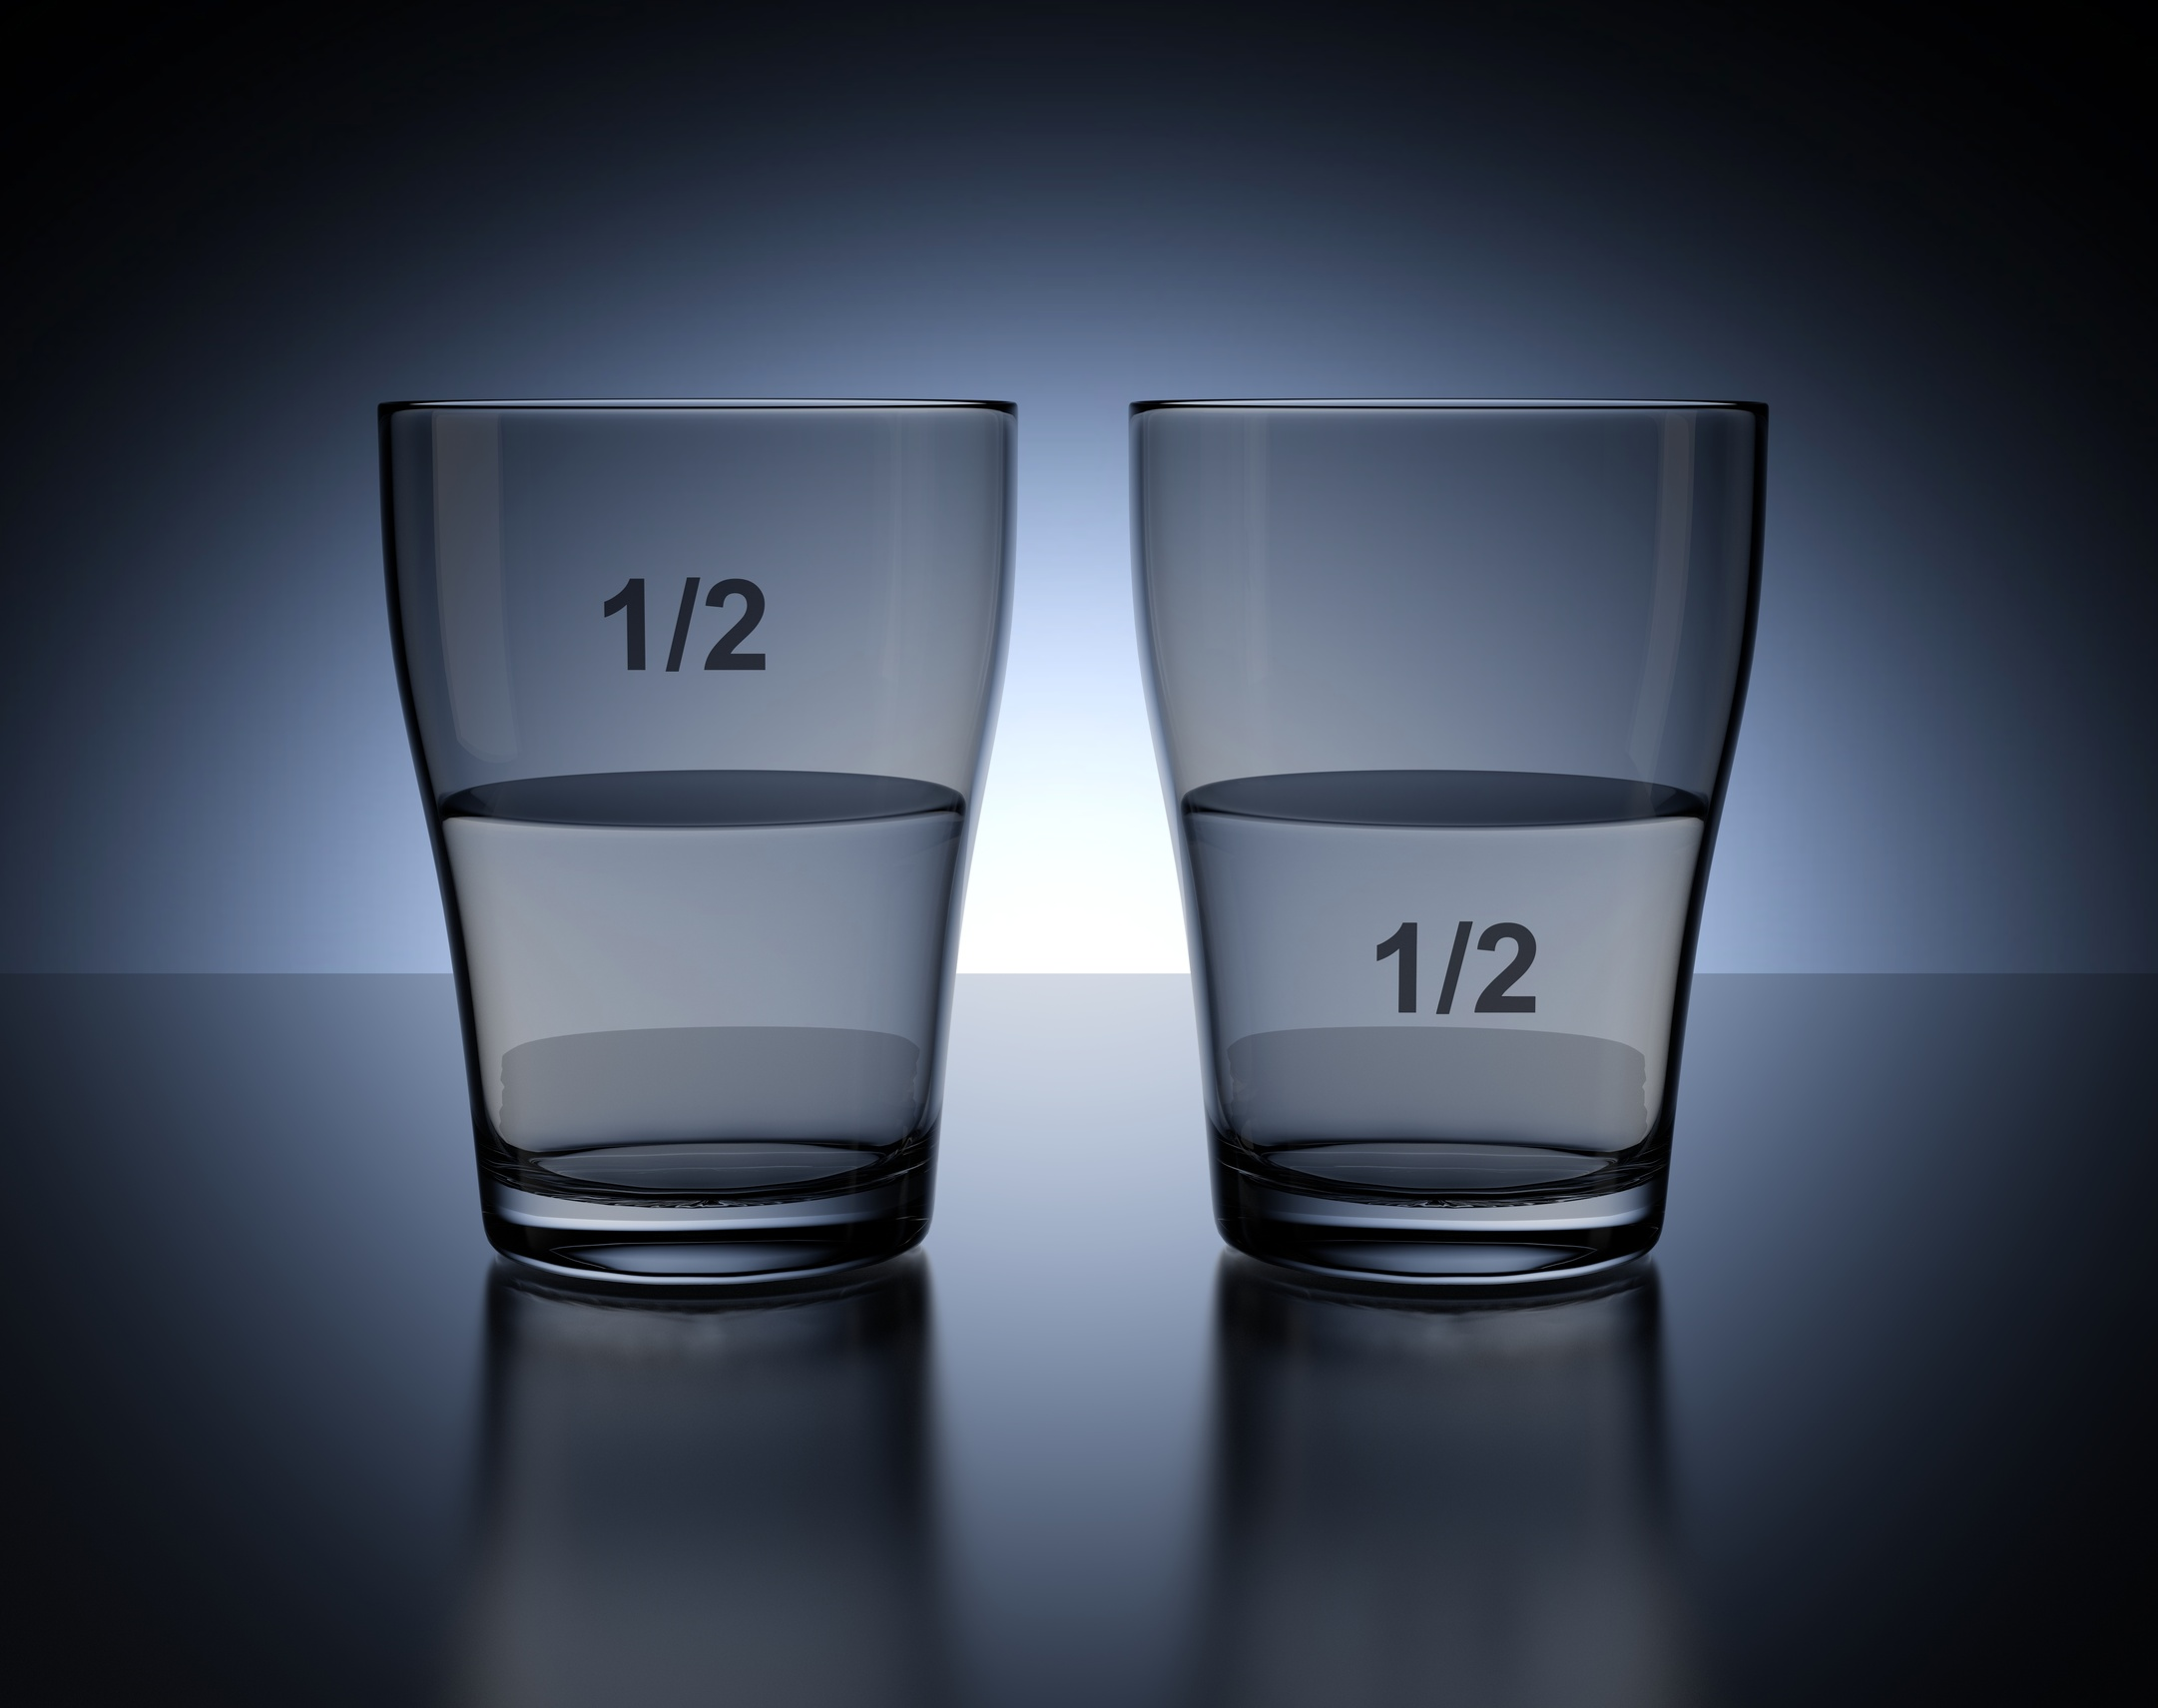 Is WebRTC ready? Is the glass half full or half empty ...